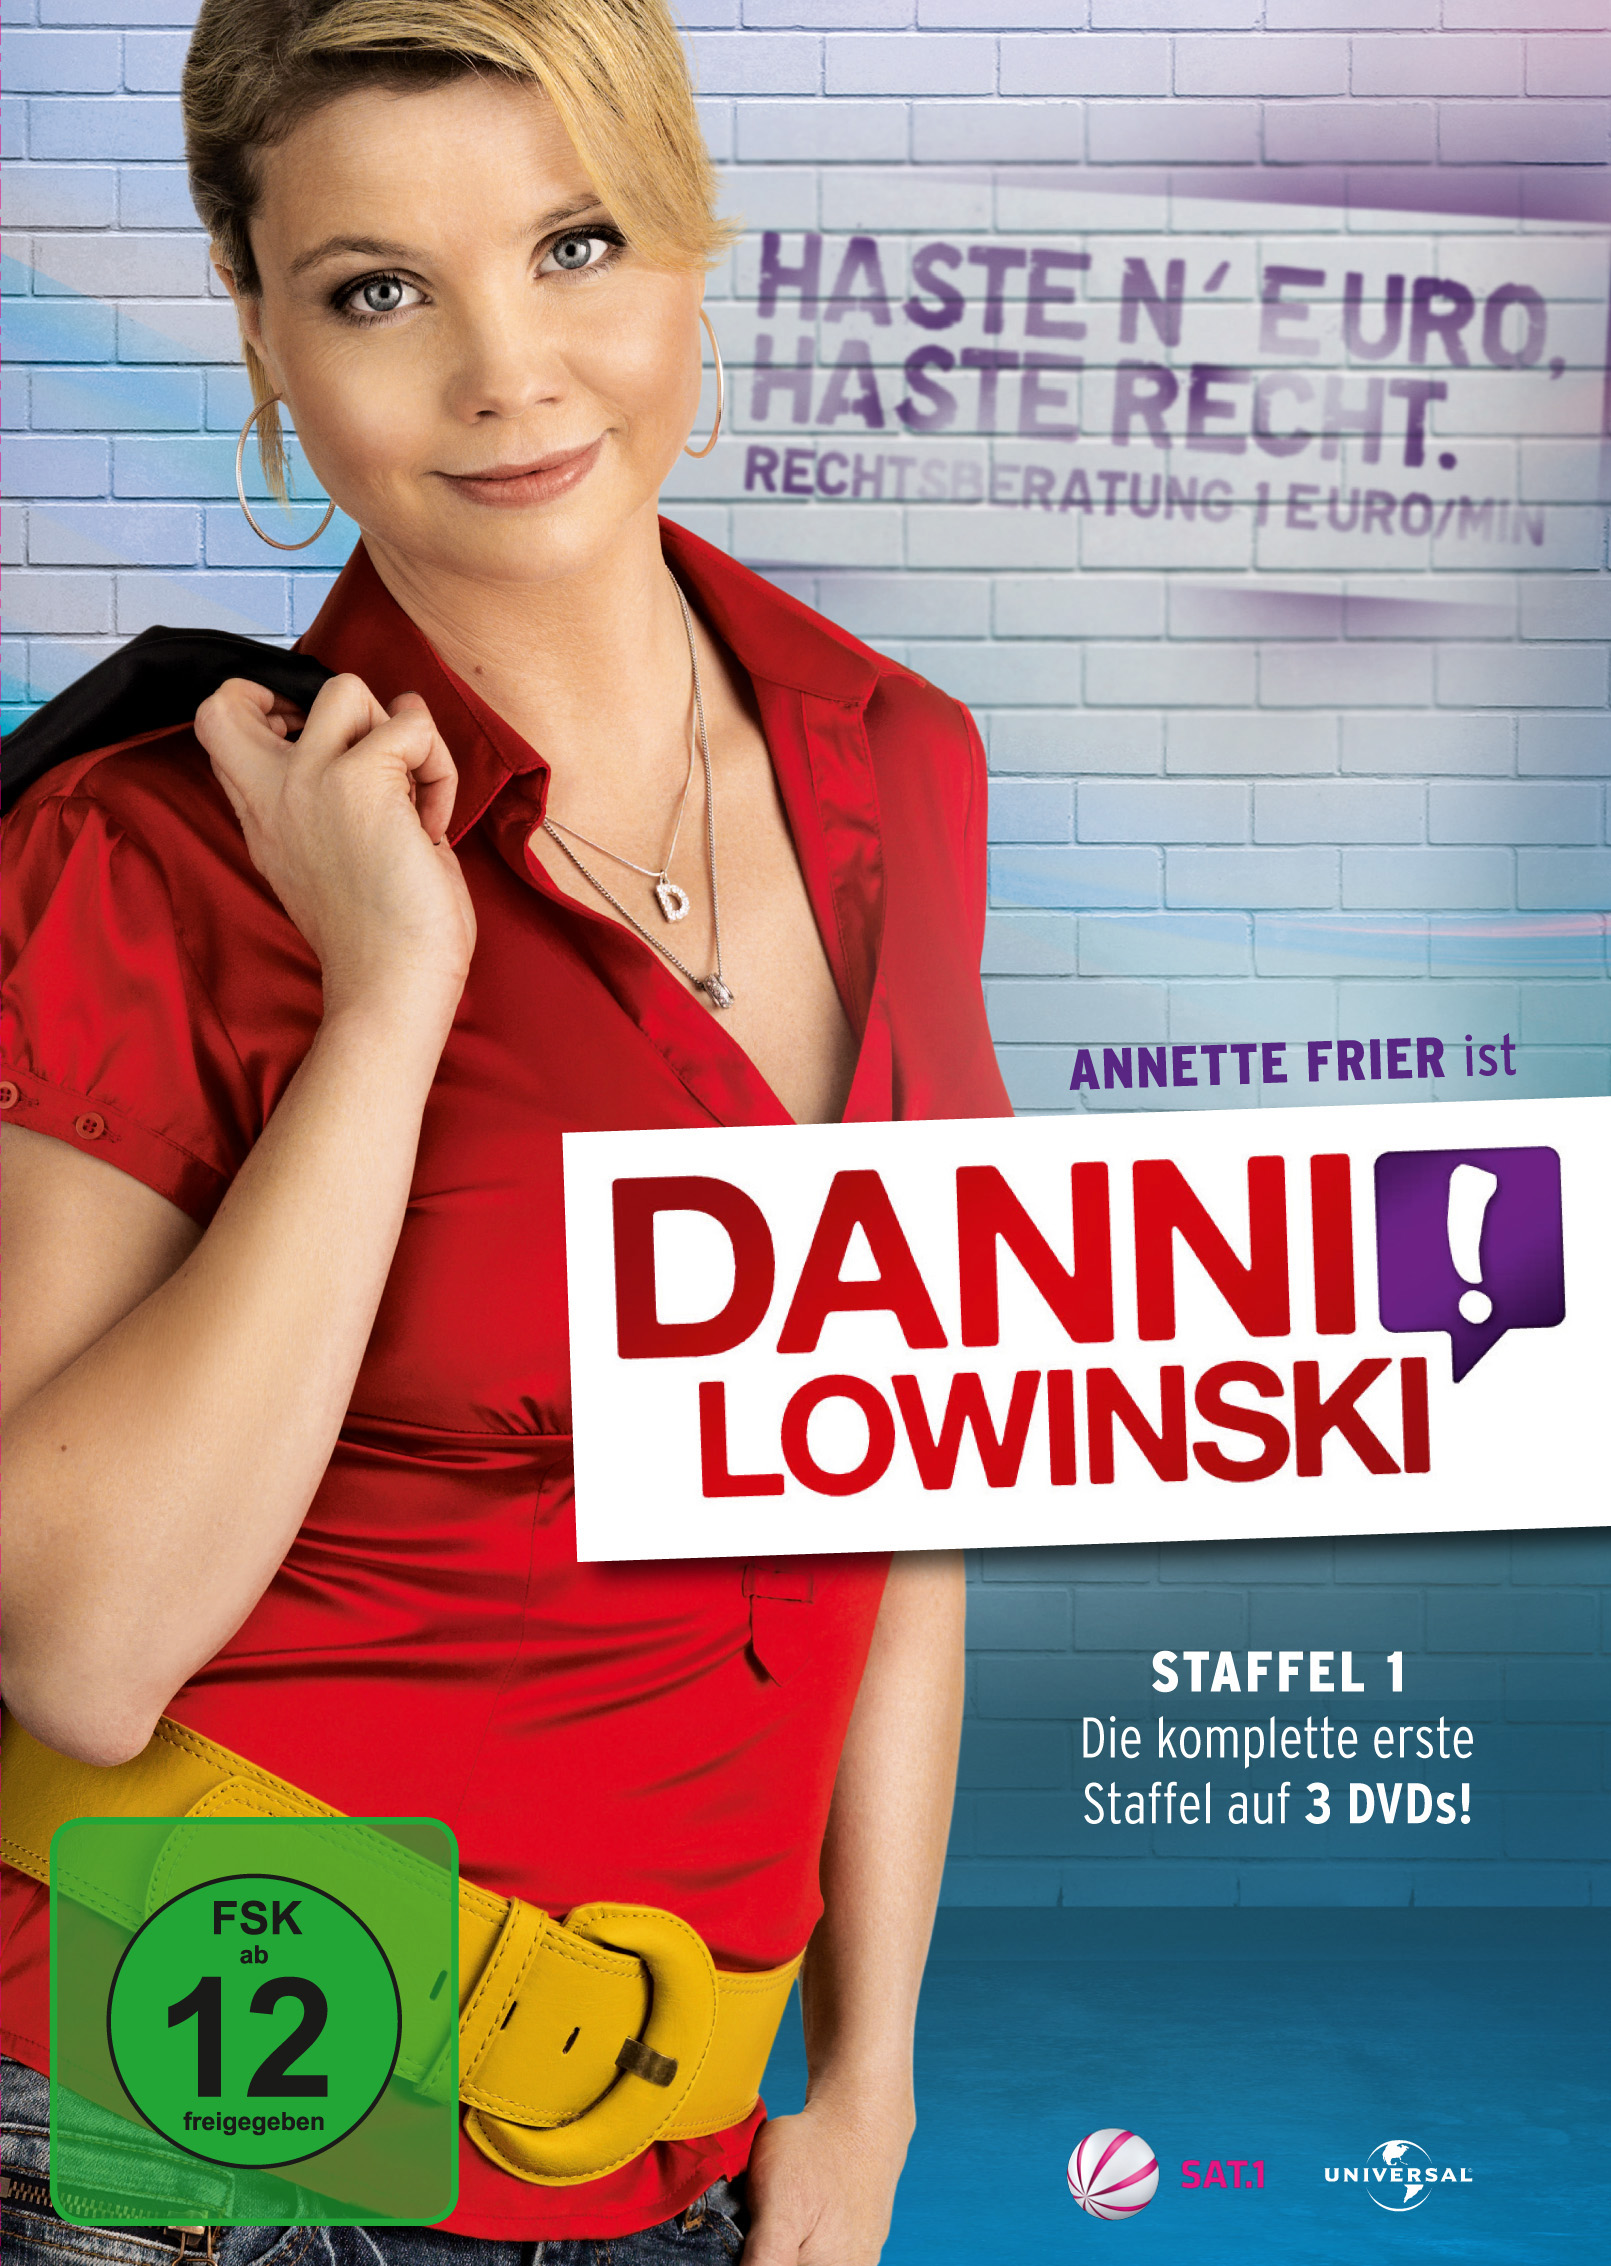 Danni Lowinski movie